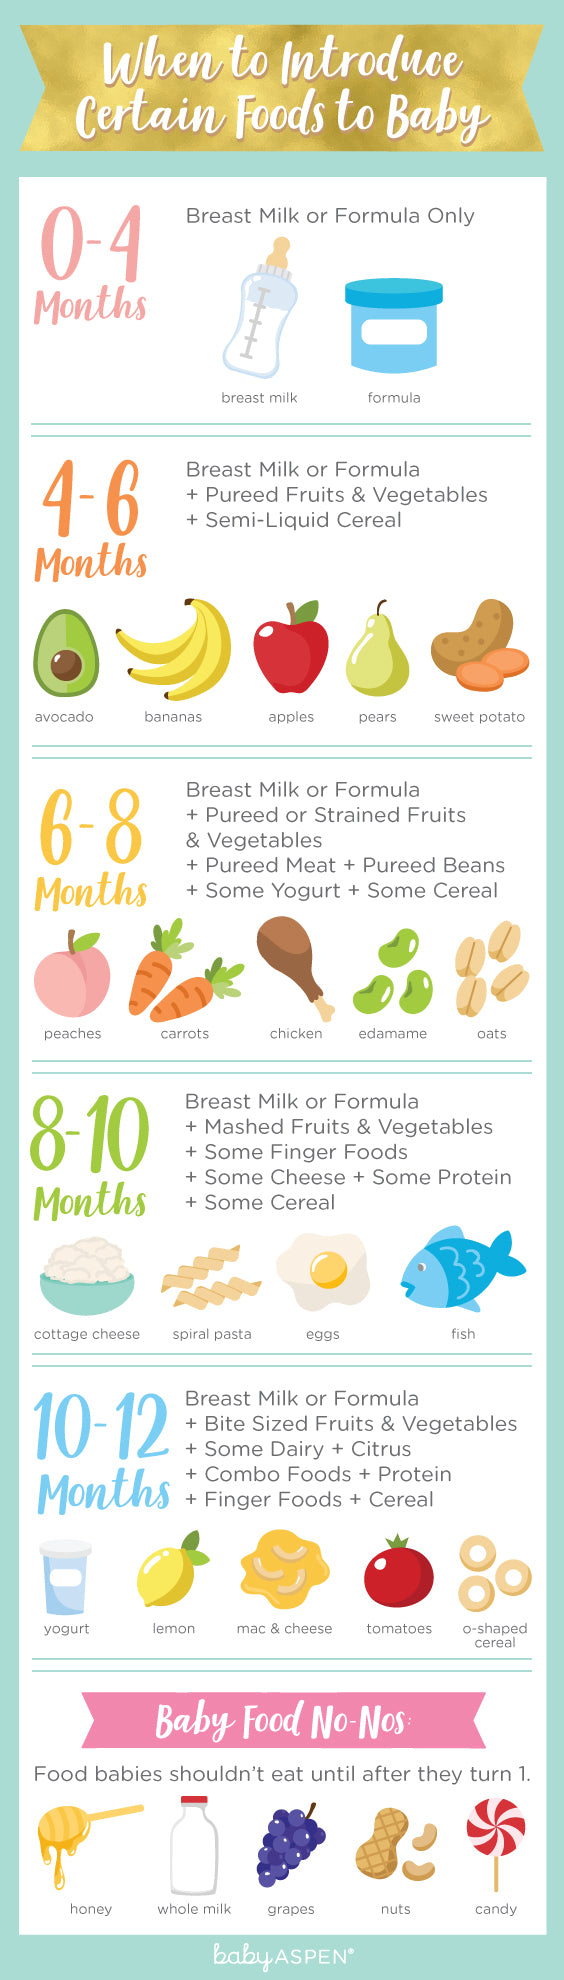 When to Introduce Certain Foods to Baby | Infographic | Baby Aspen